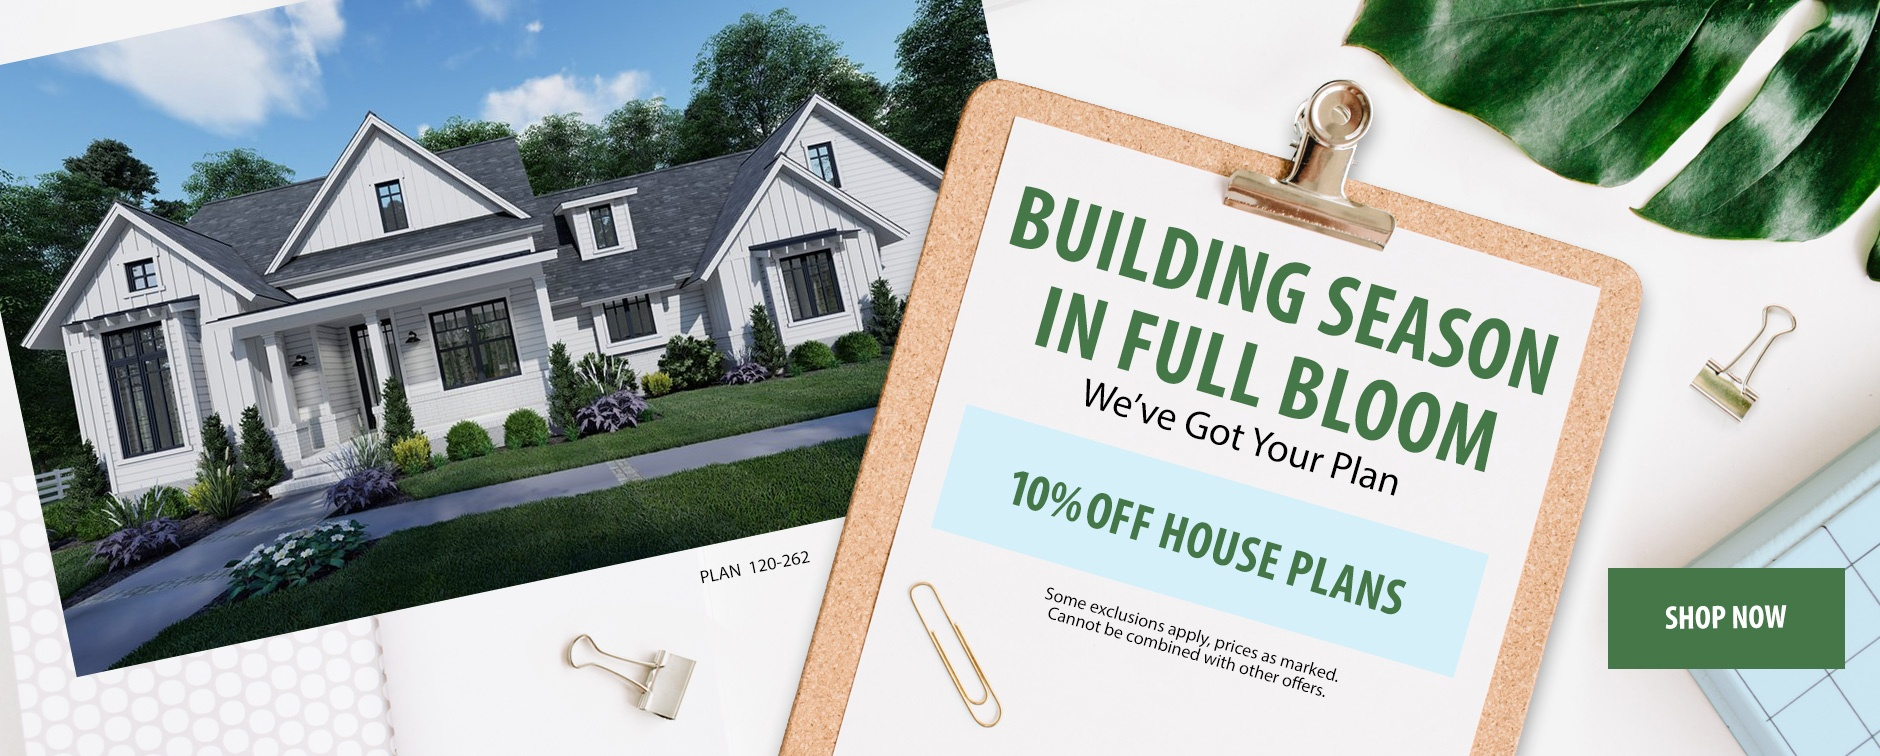 Builders: Enjoy 10% Off Floor Plans